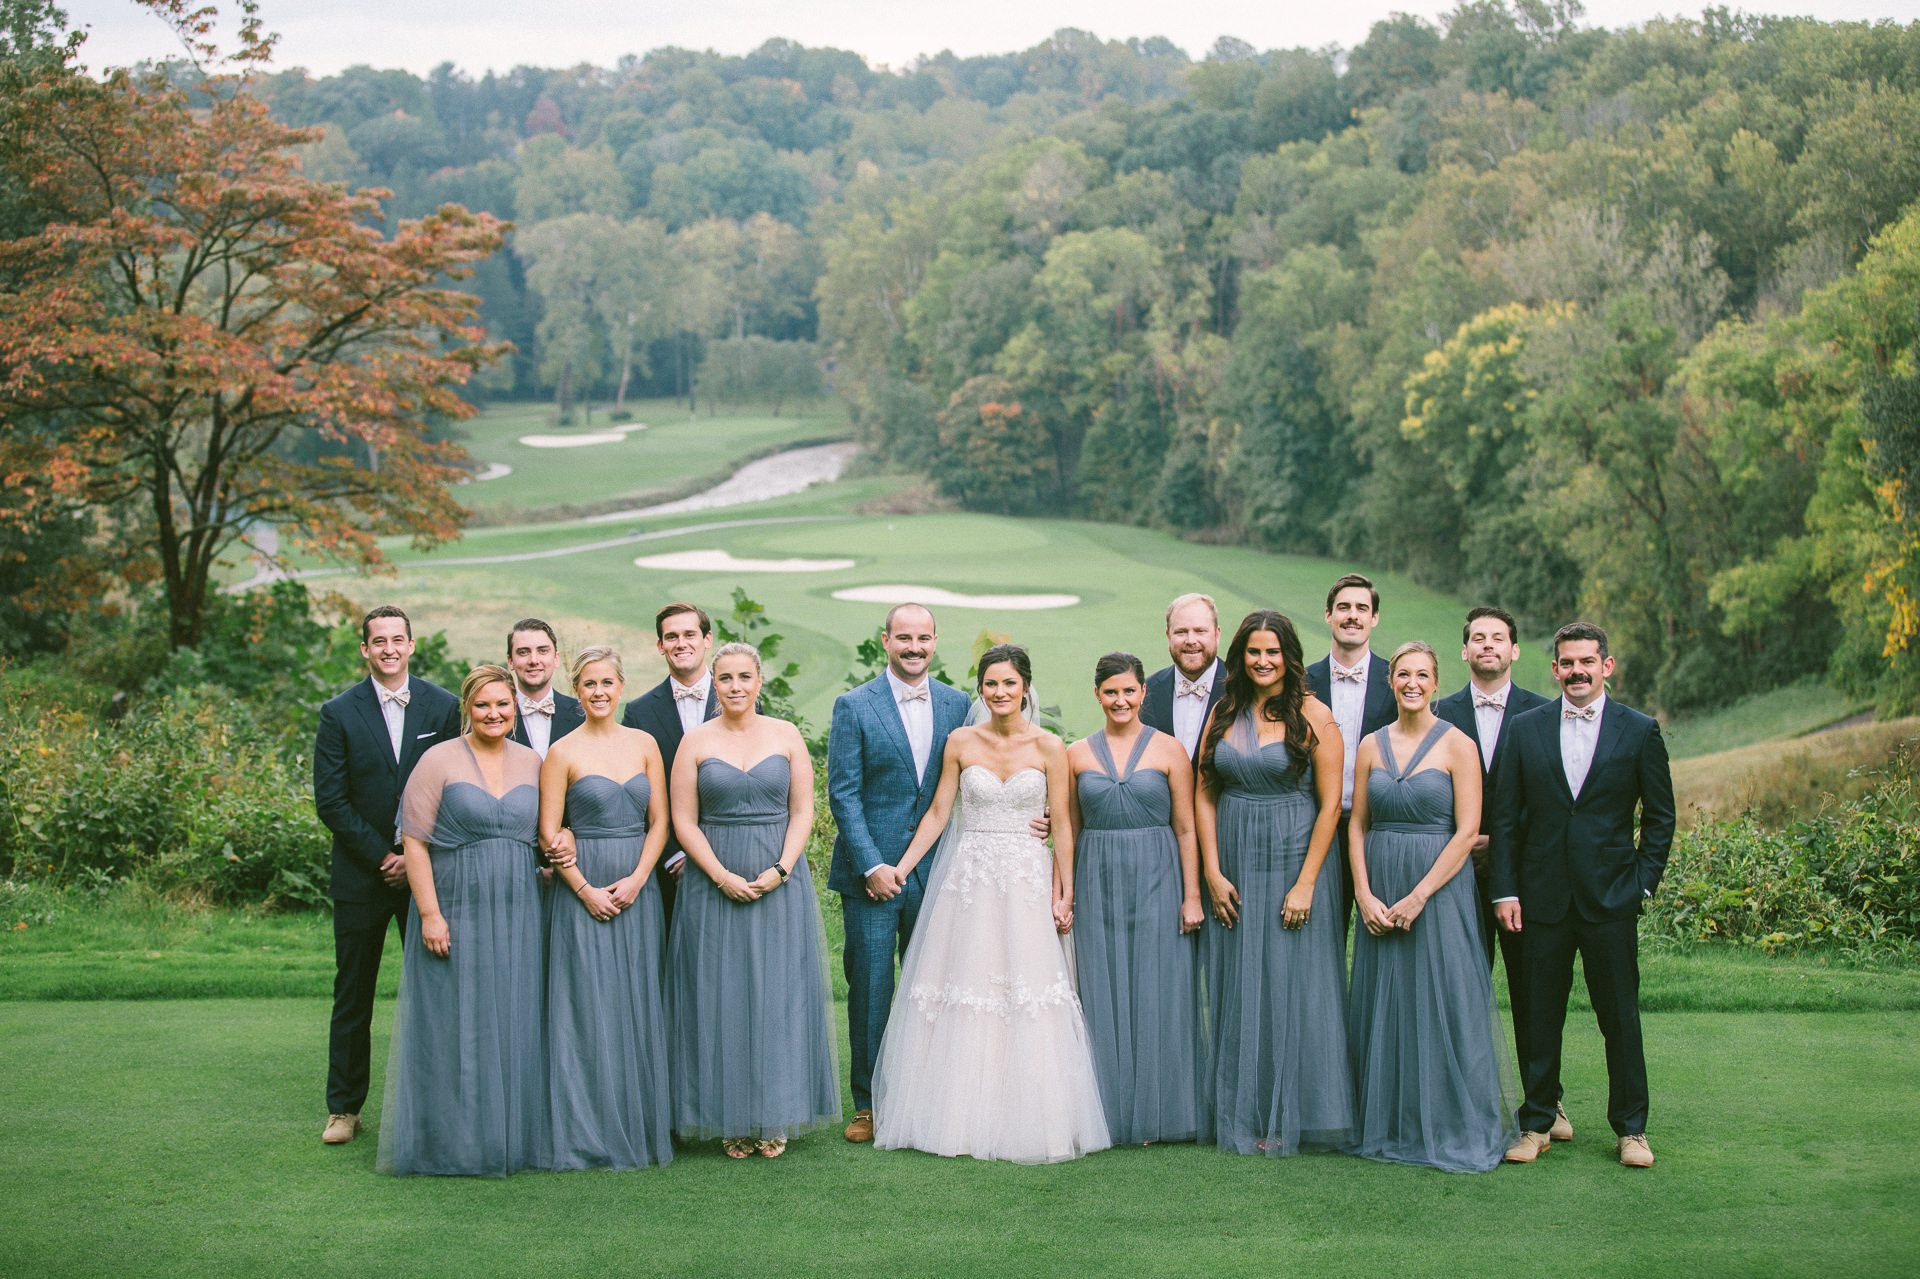 Wedding at Kirtland Country Club in Willoughby 2 13.jpg